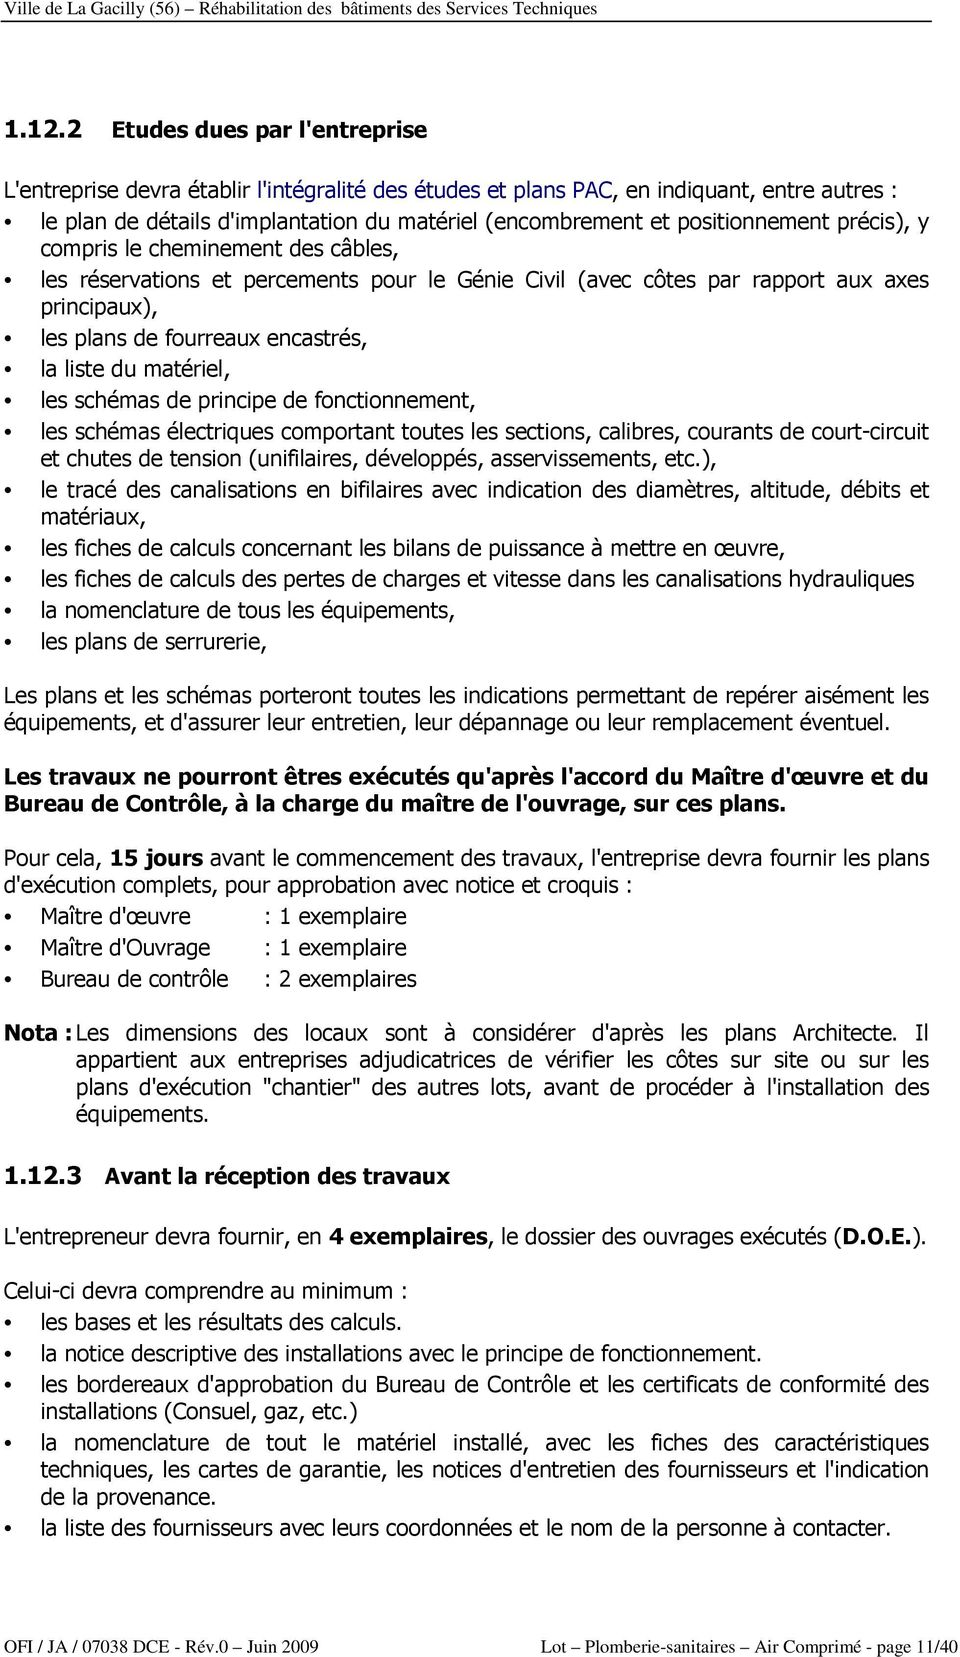 liste du matériel, les schémas de principe de fonctionnement, les schémas électriques comportant toutes les sections, calibres, courants de court-circuit et chutes de tension (unifilaires,